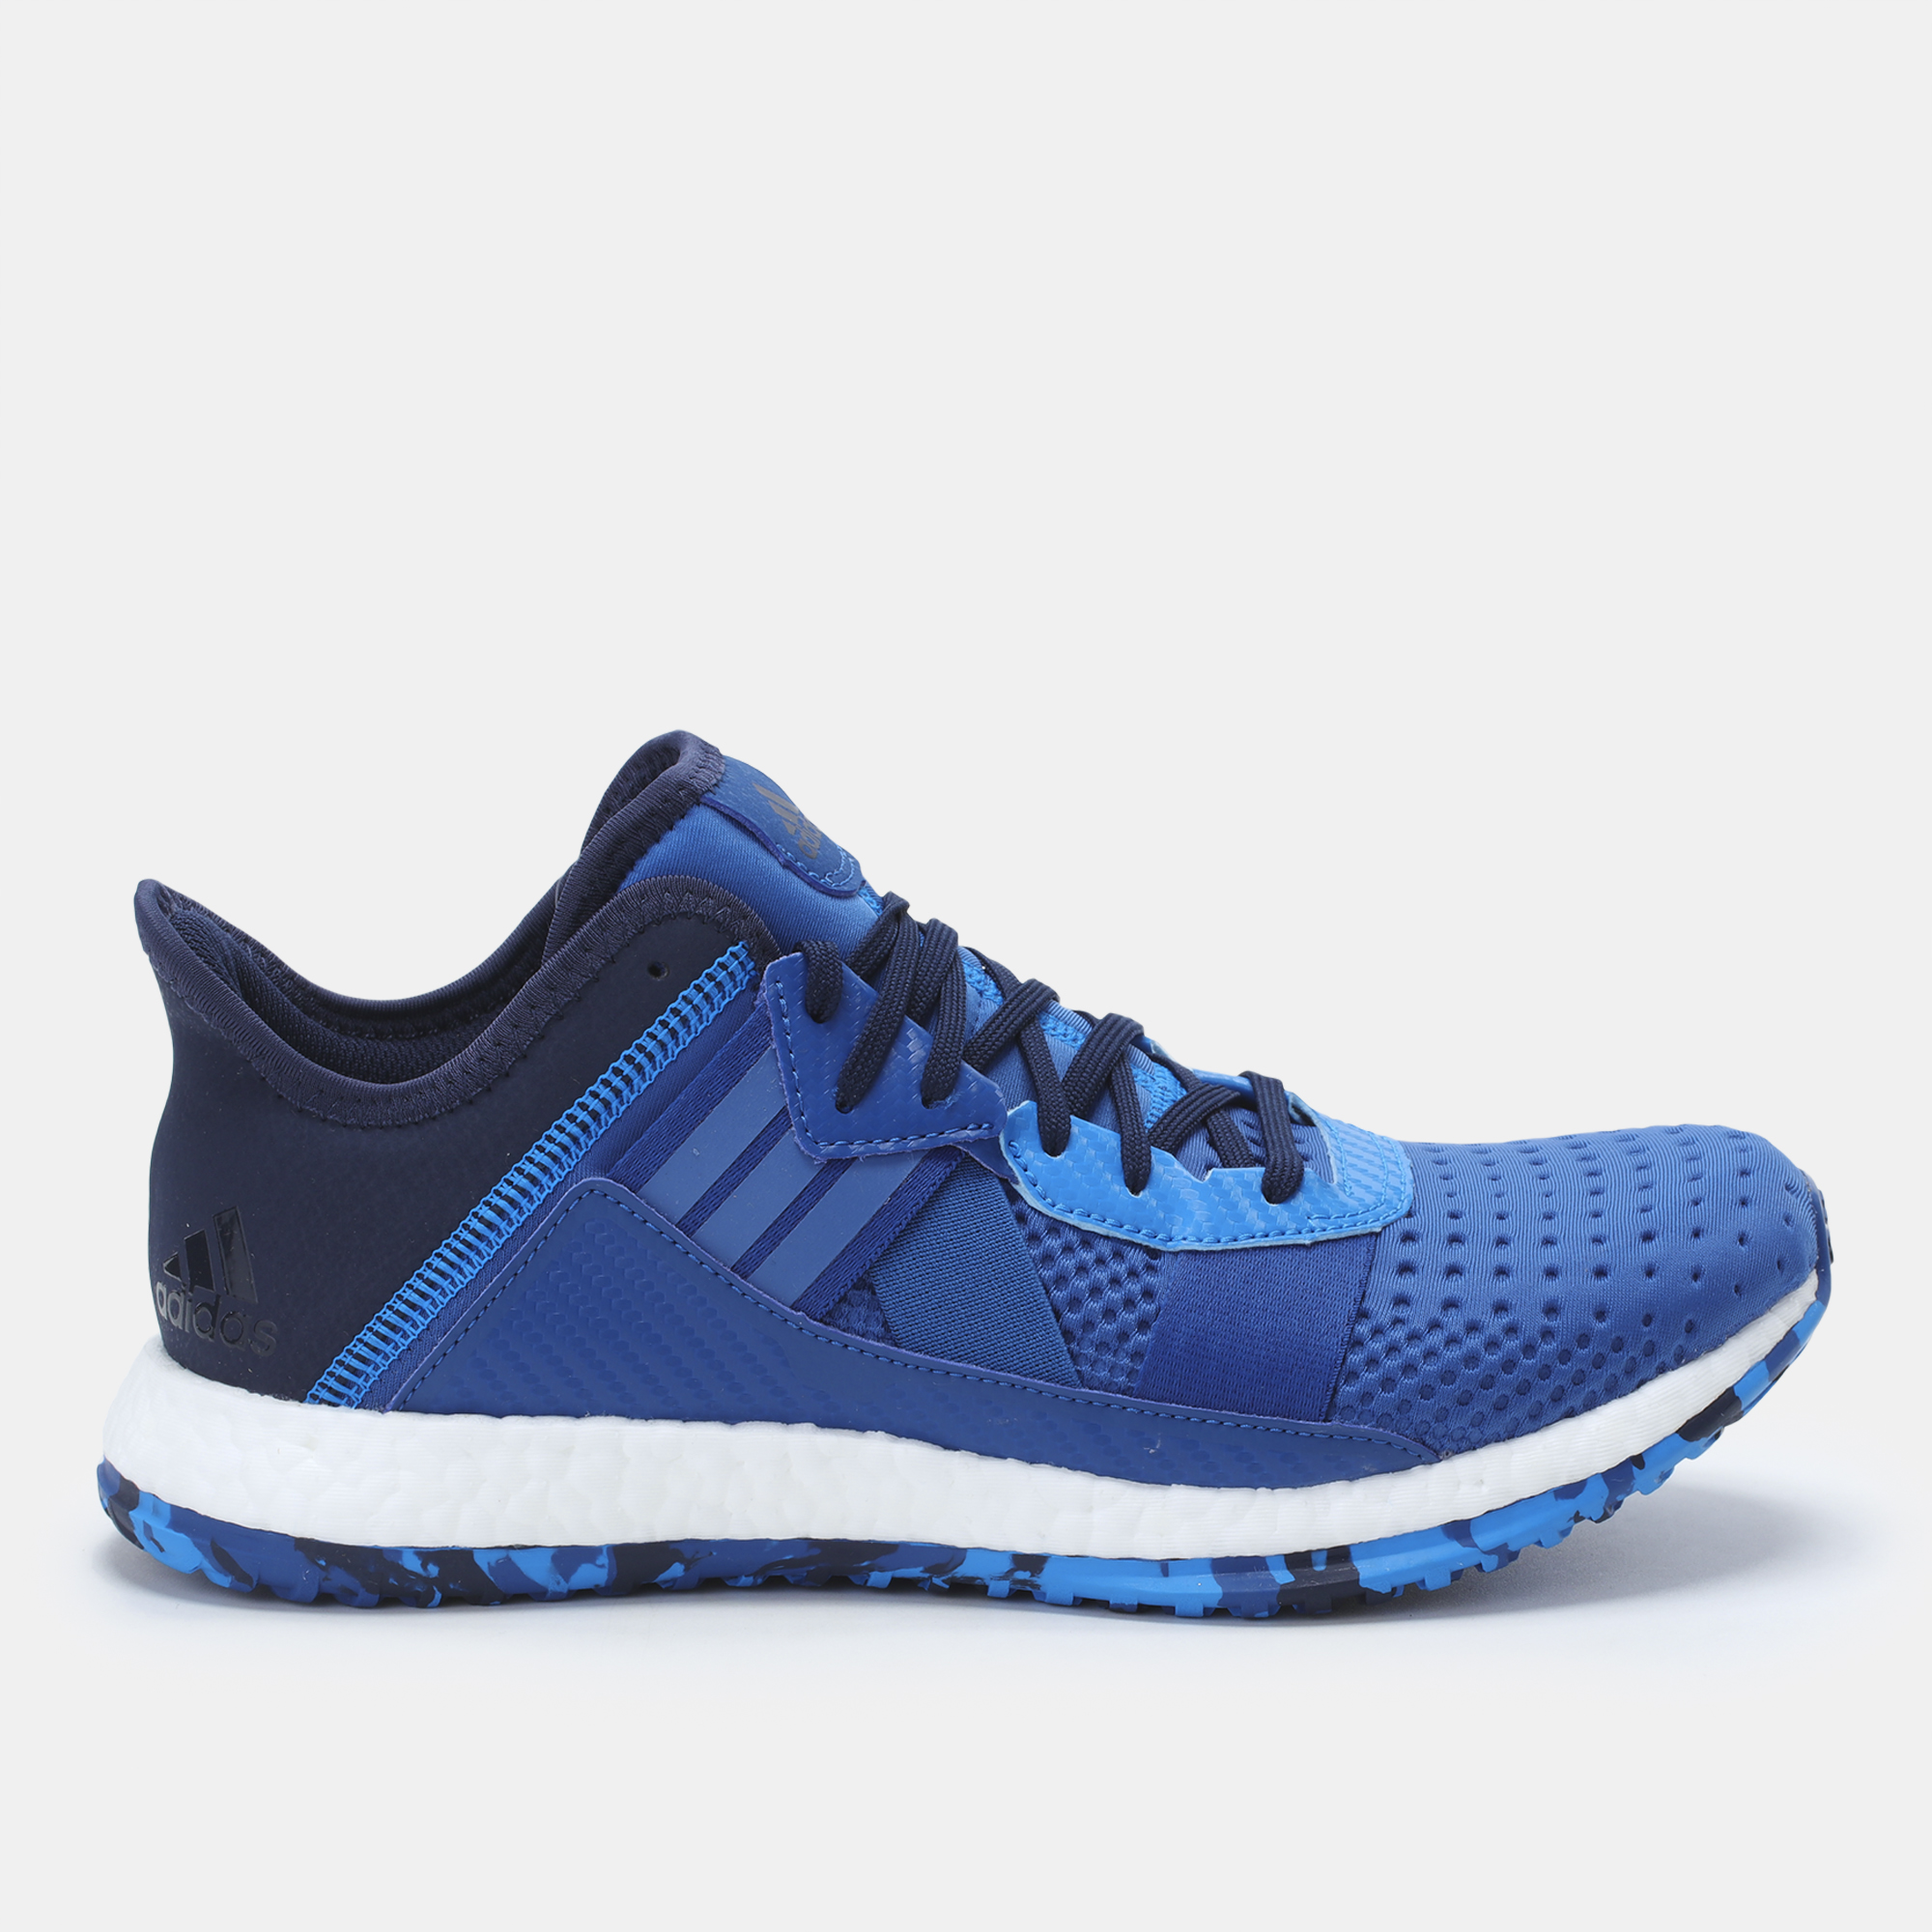 d0ed53d37 Shop Blue adidas Pure Boost ZG Trainer Shoe for Mens by adidas - 6